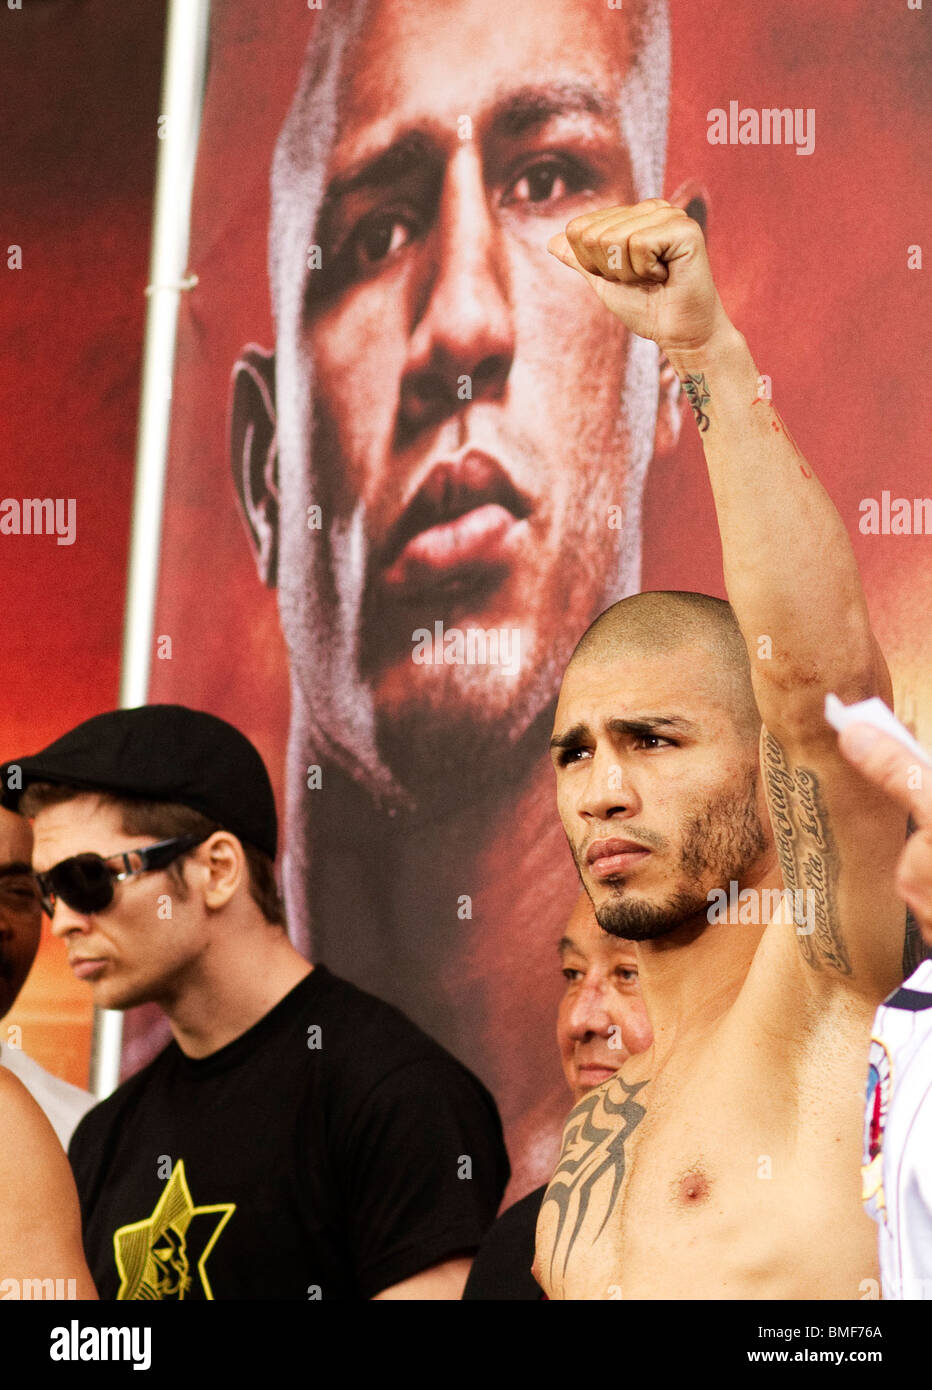 Miguel Cotto Yuri Foreman super welterweight weigh-in Yankee Stadium boxing sports weigh-in - Stock Image